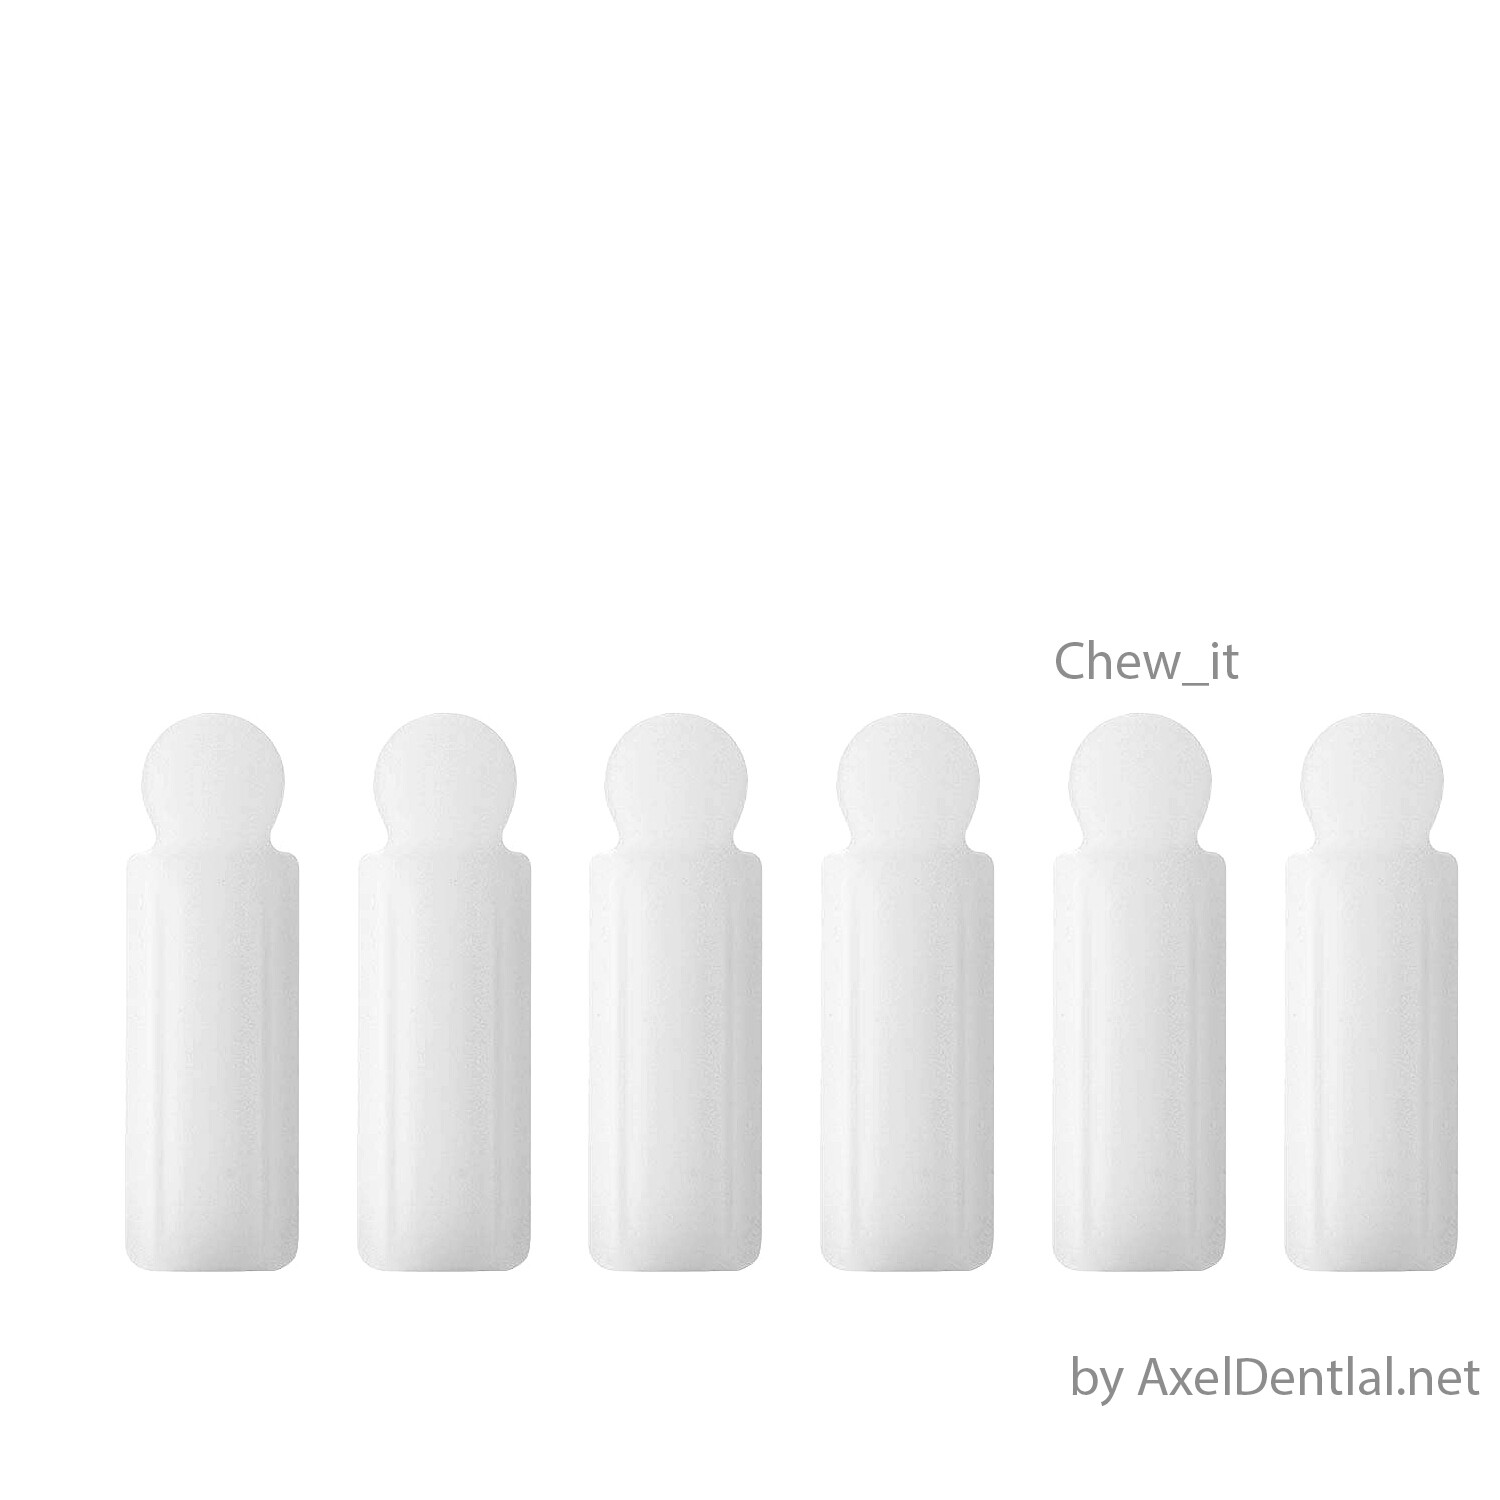 Chewit - 6 chewies